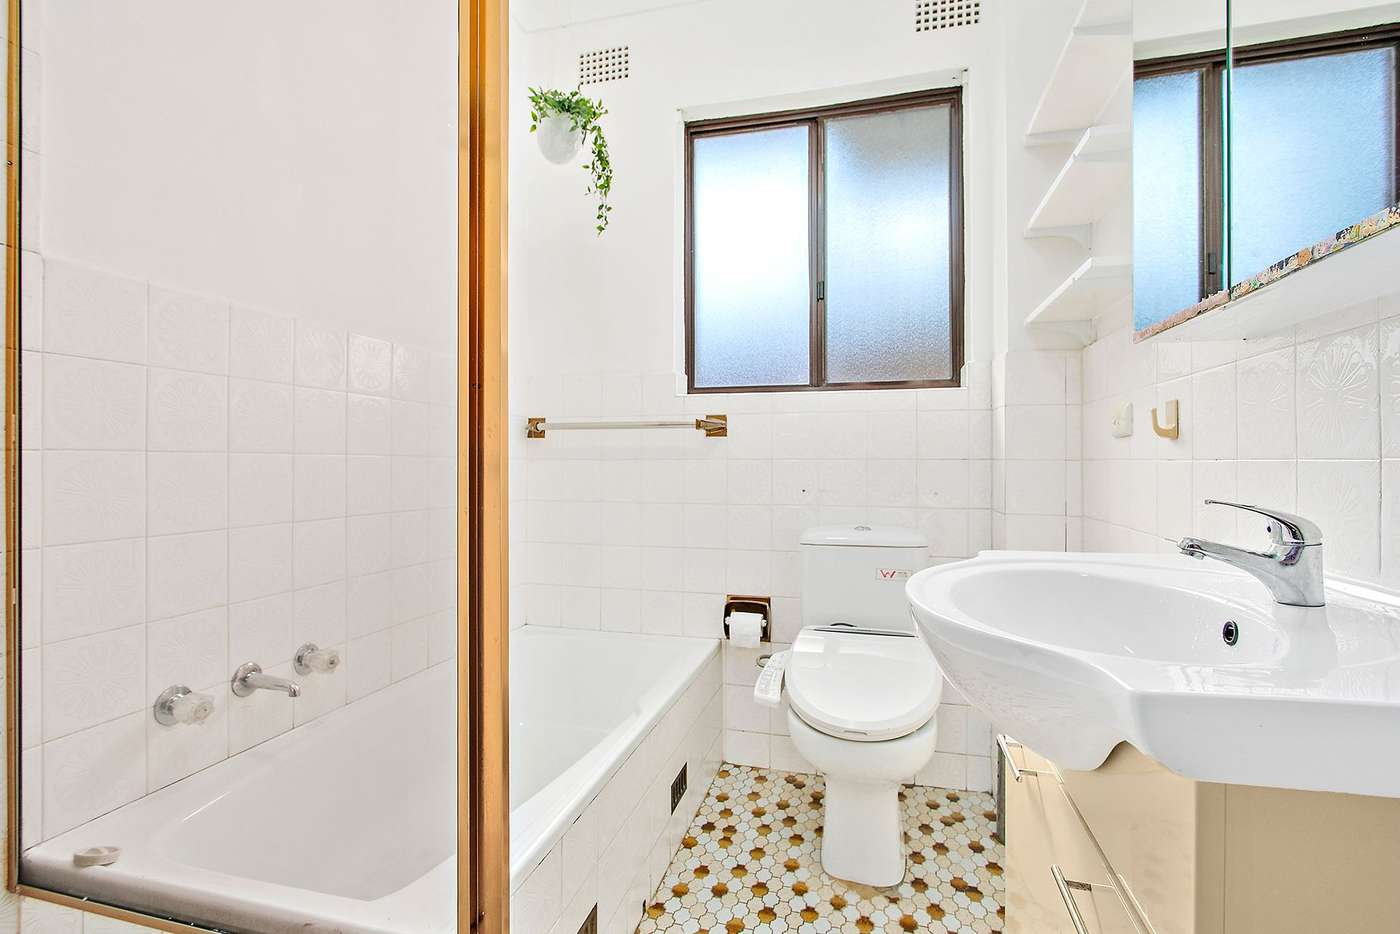 Sixth view of Homely unit listing, 4/10-12 Short Street, Kogarah NSW 2217